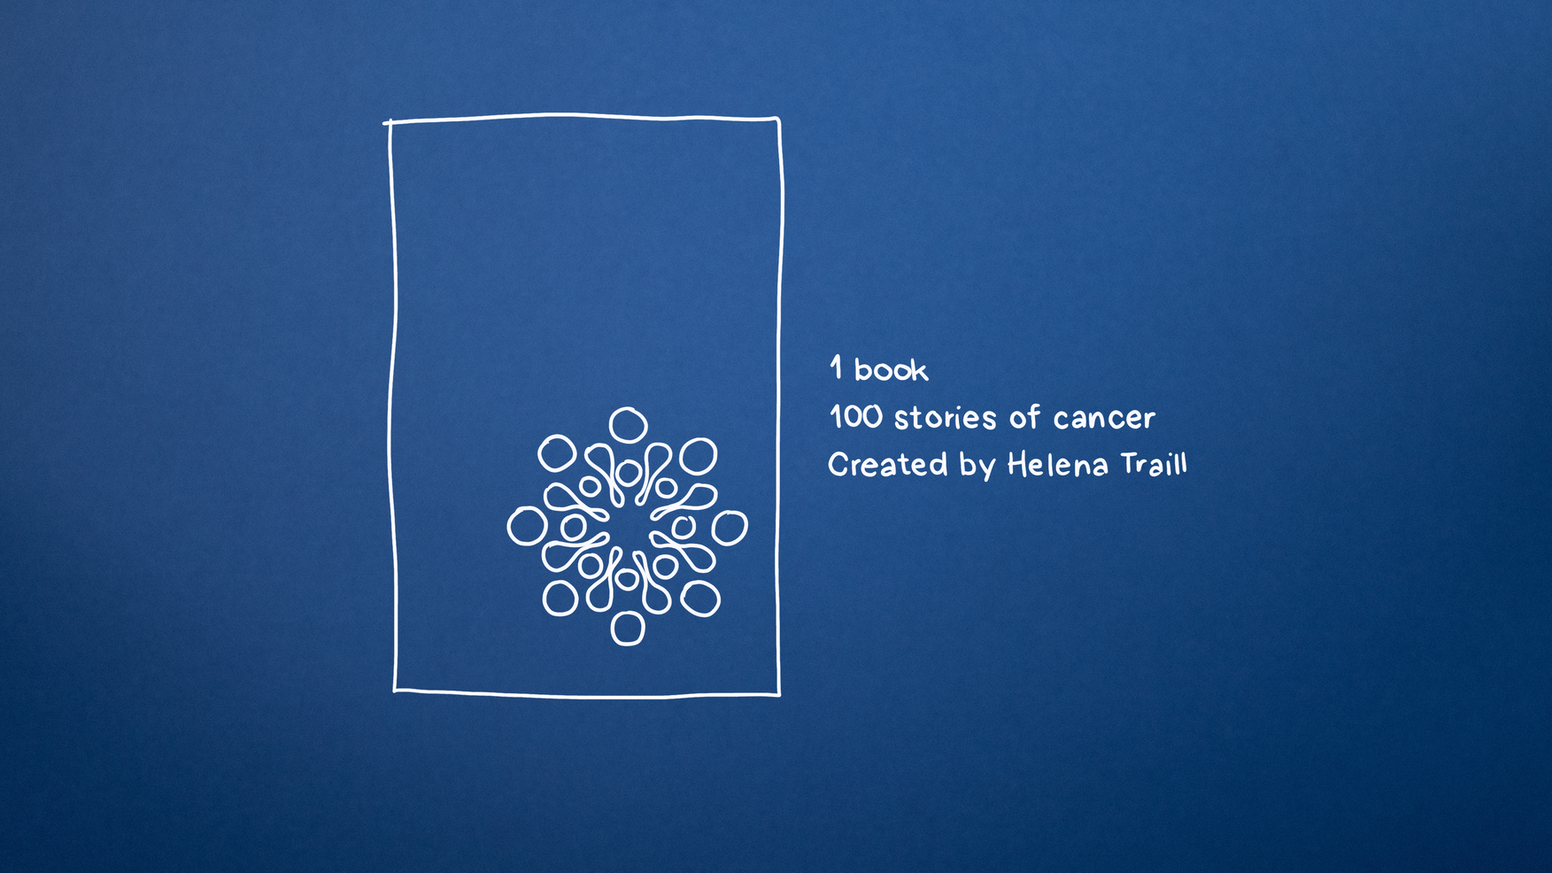 1 book. 100 personal stories of people affected by cancer. Created by Helena Traill.